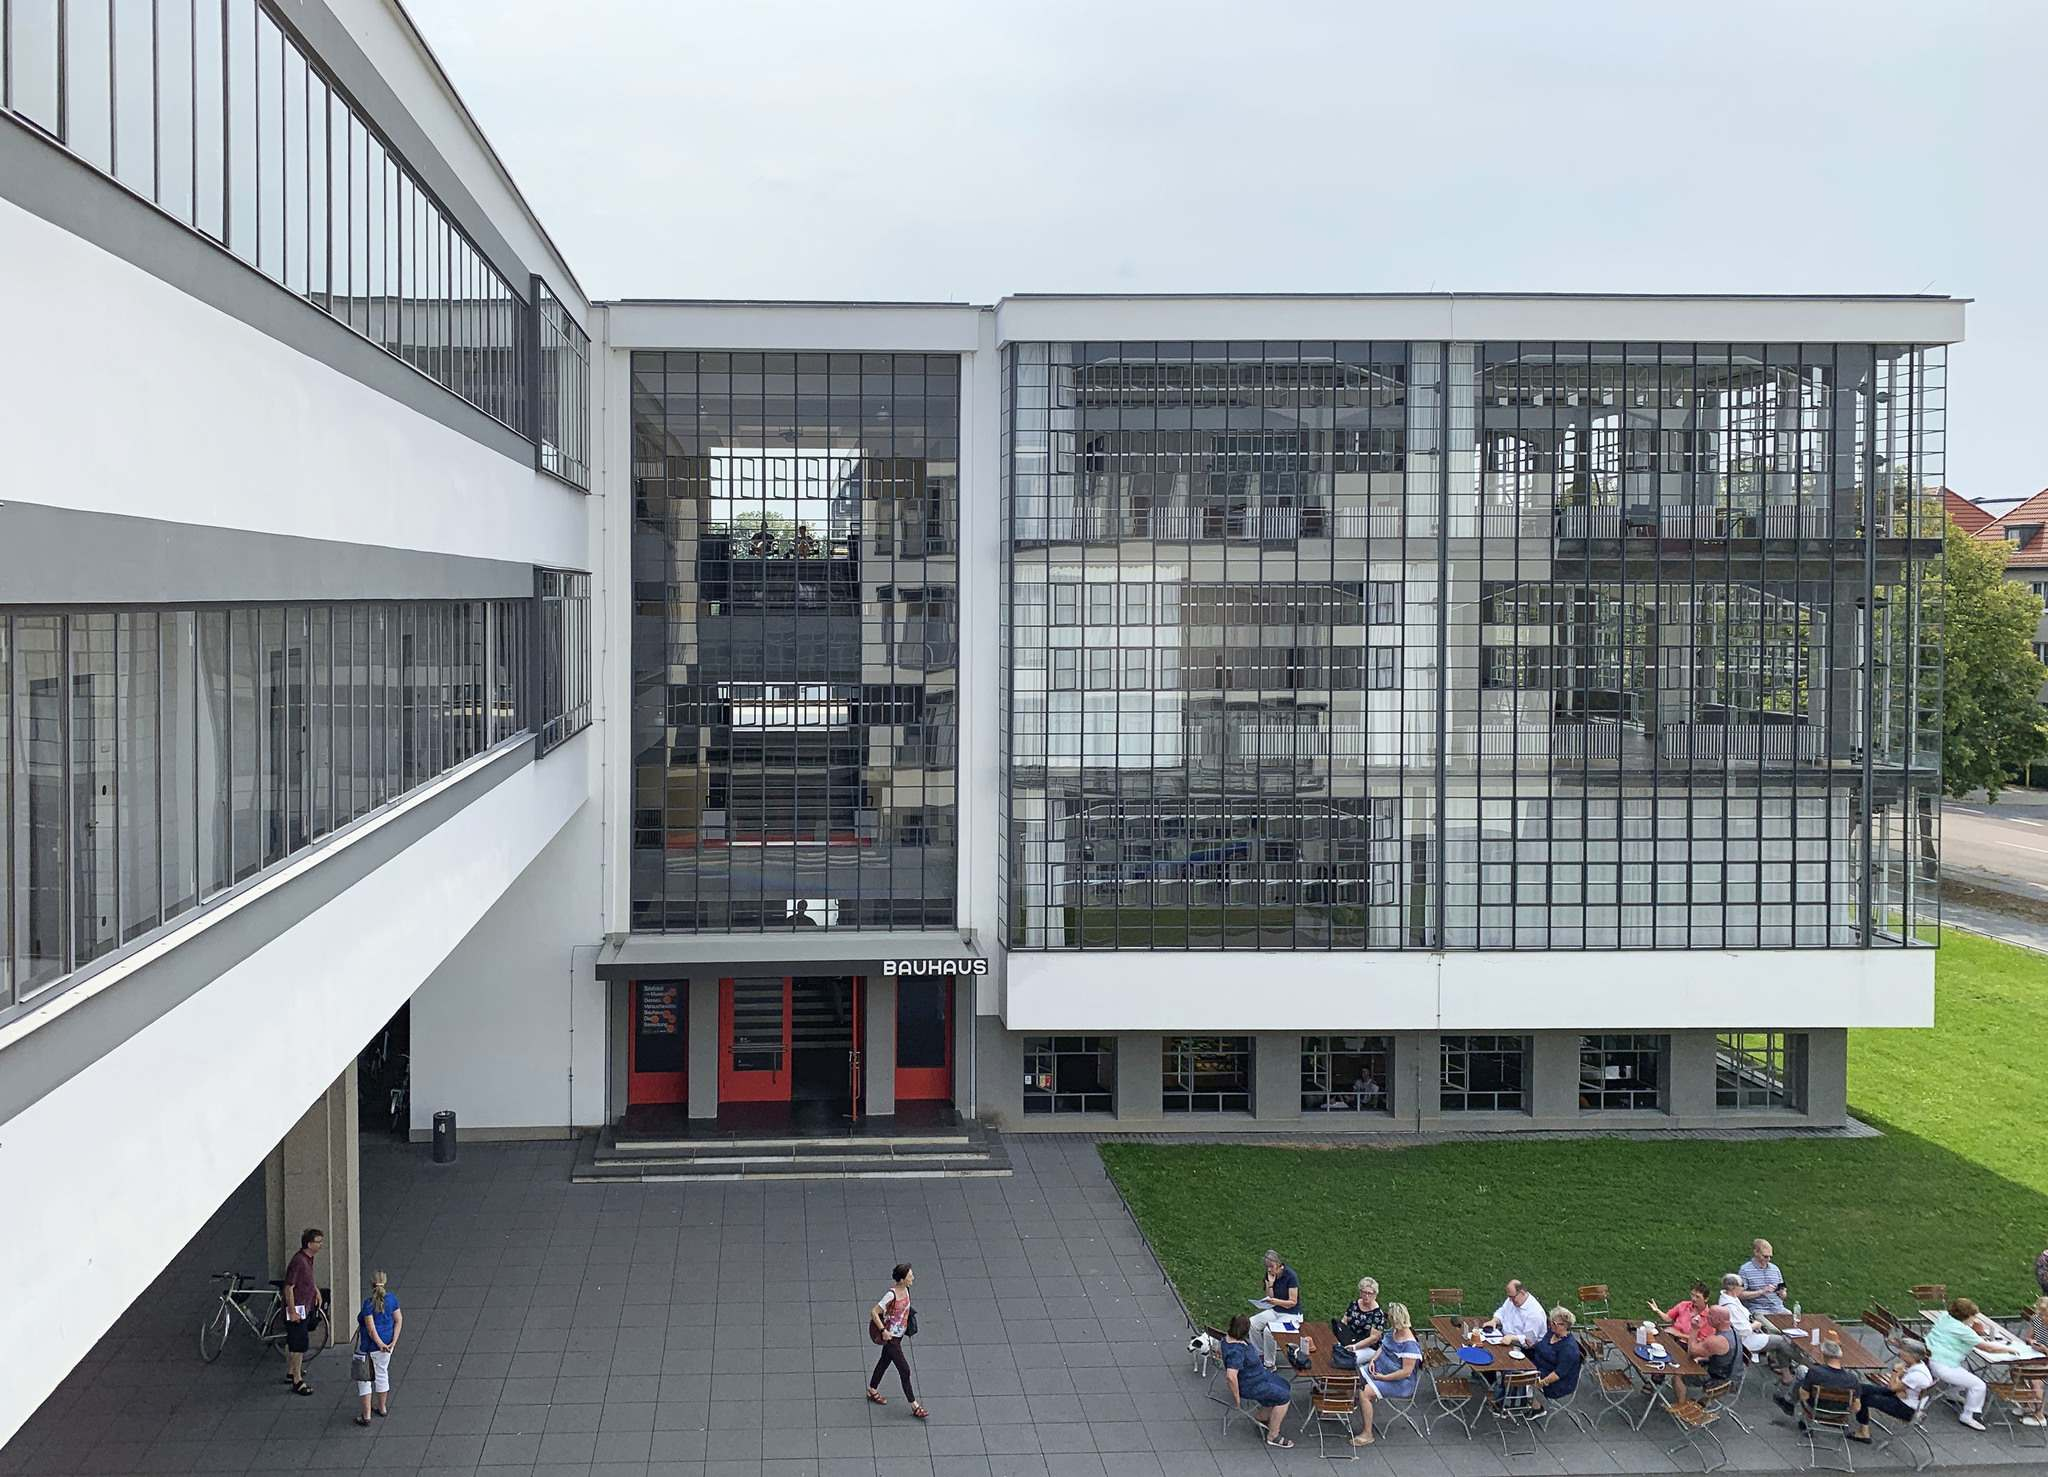 The Bauhaus was an art and architecture school that was instrumental in developing the Modernist style of architecture. The building featured large, operable windows and a view of nature. </p>